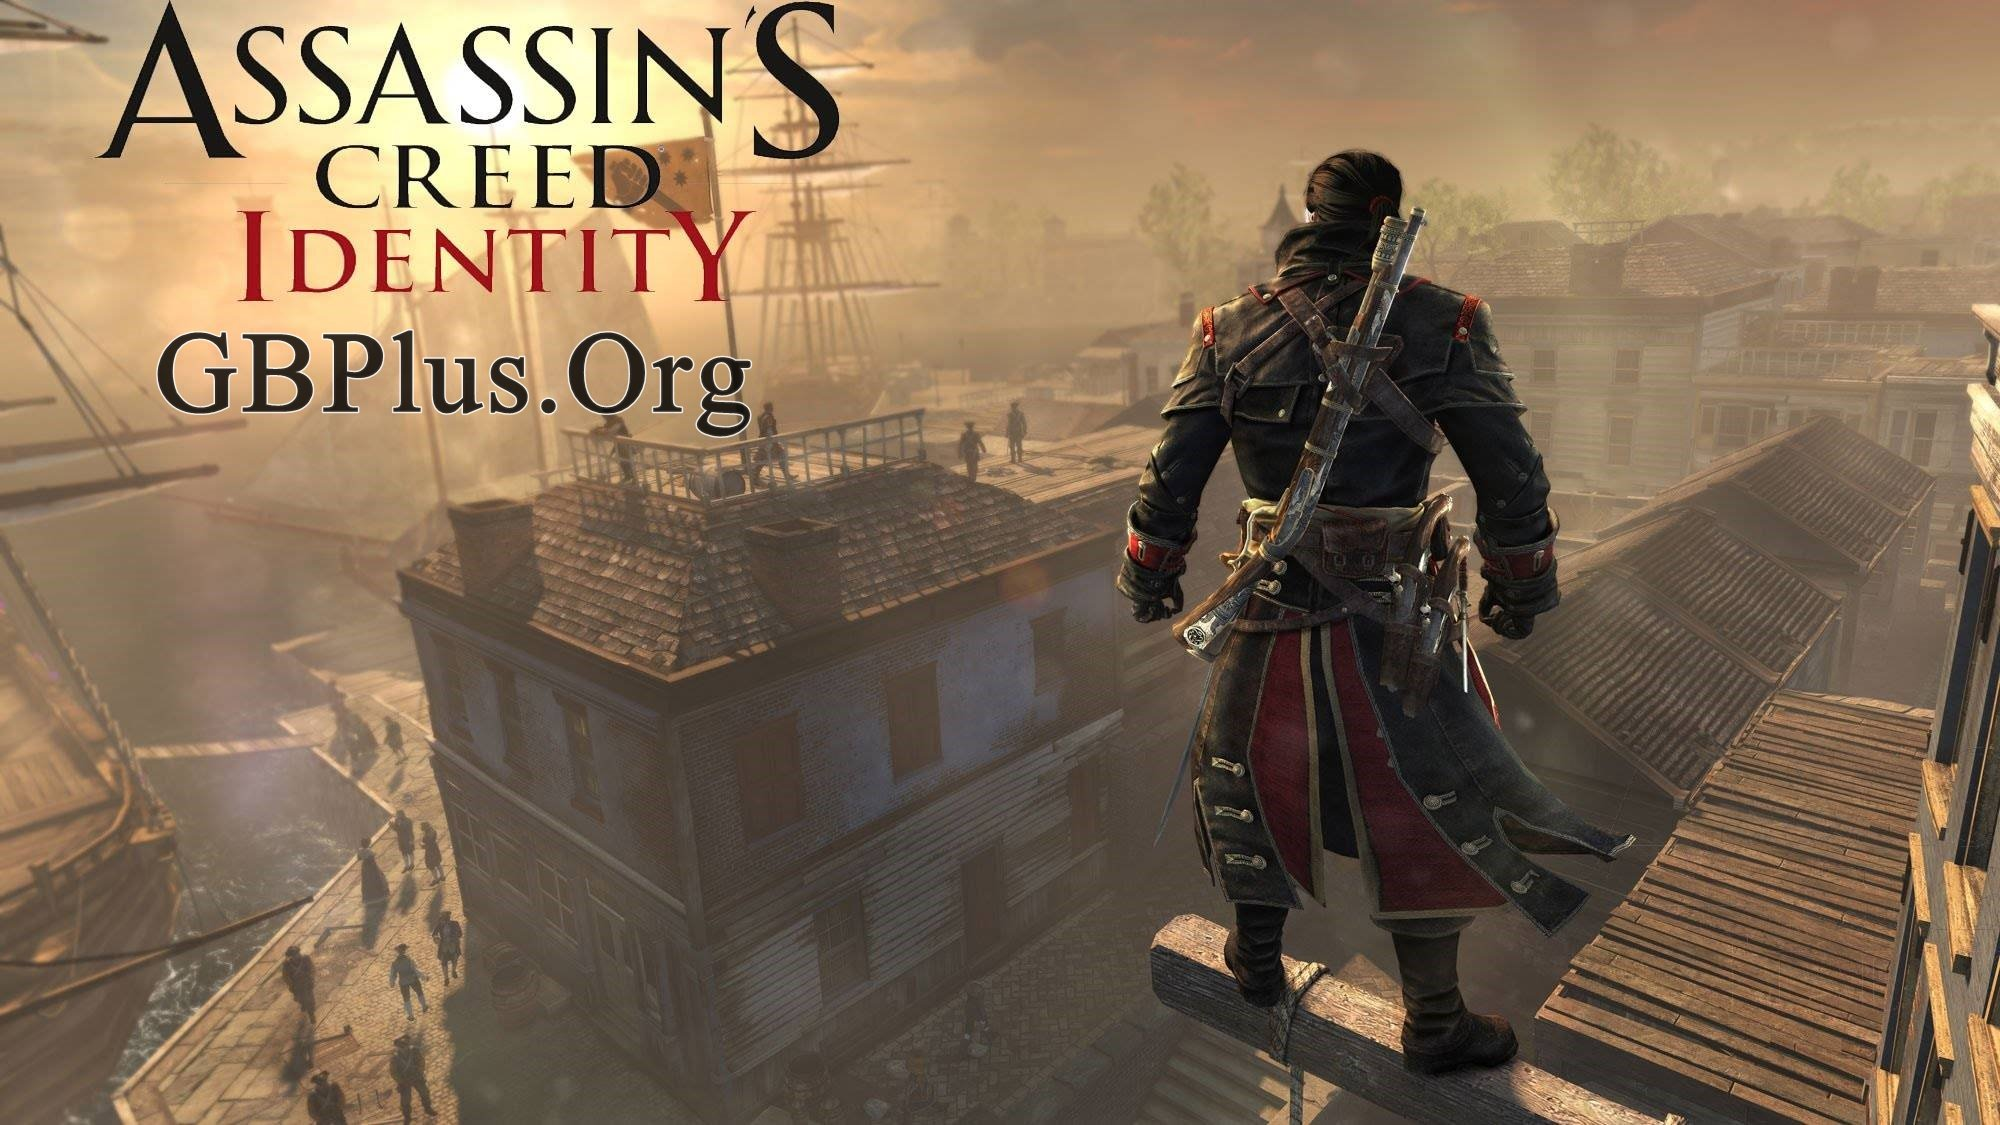 Assassin's Creed Identity Apk Download 2.9.0 Mod For Android